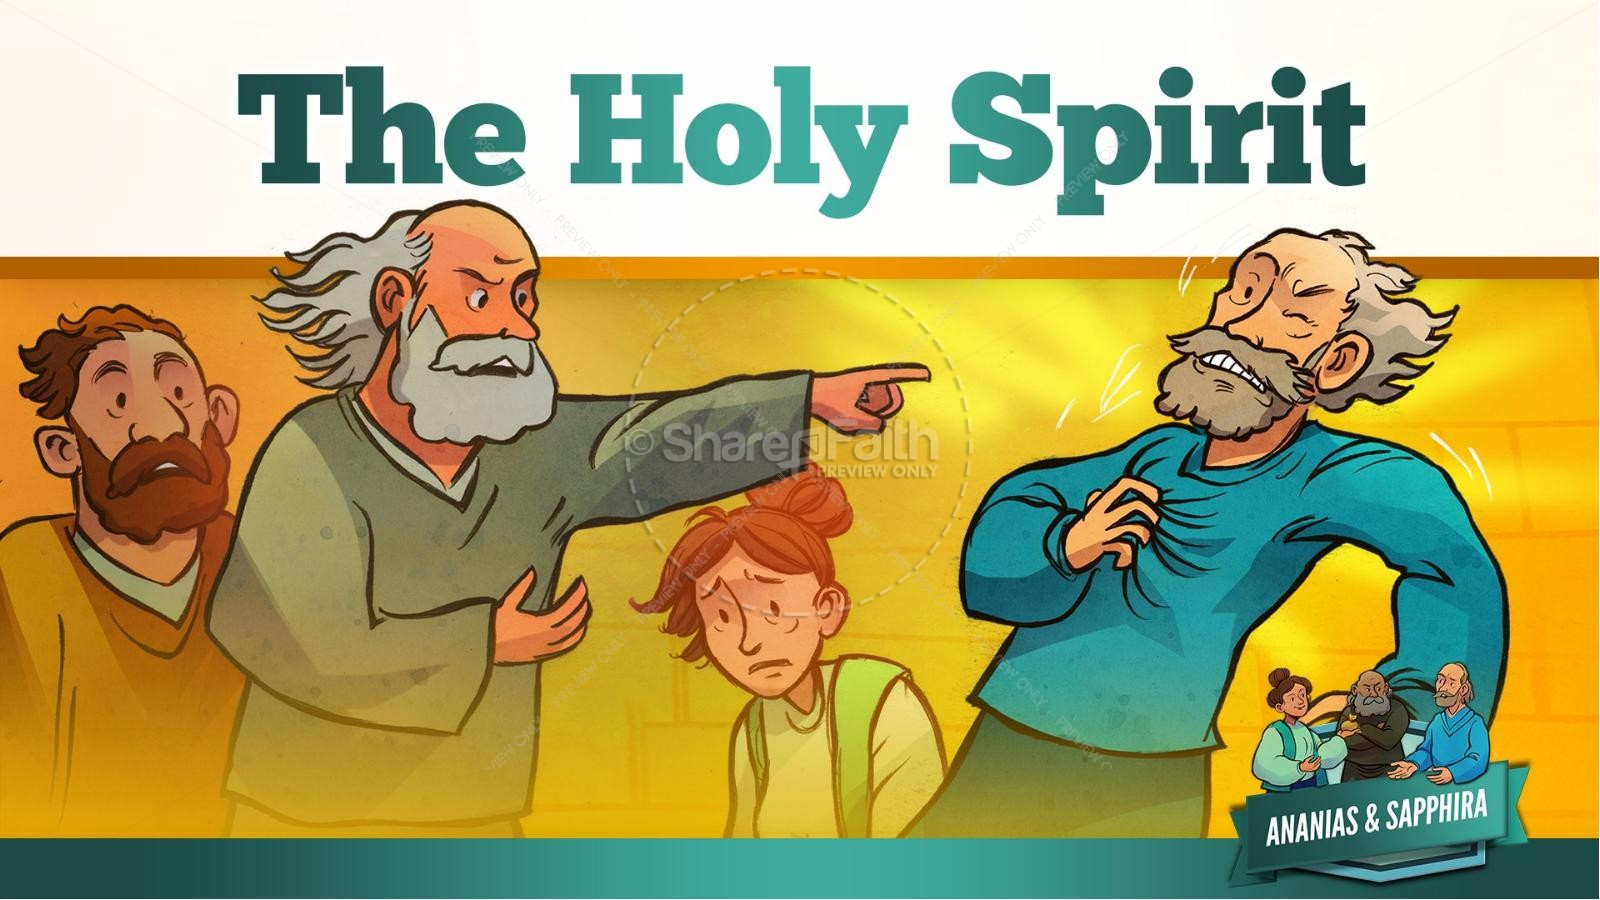 Acts 5 Ananias and Sapphira Kids Bible Stories | slide 22